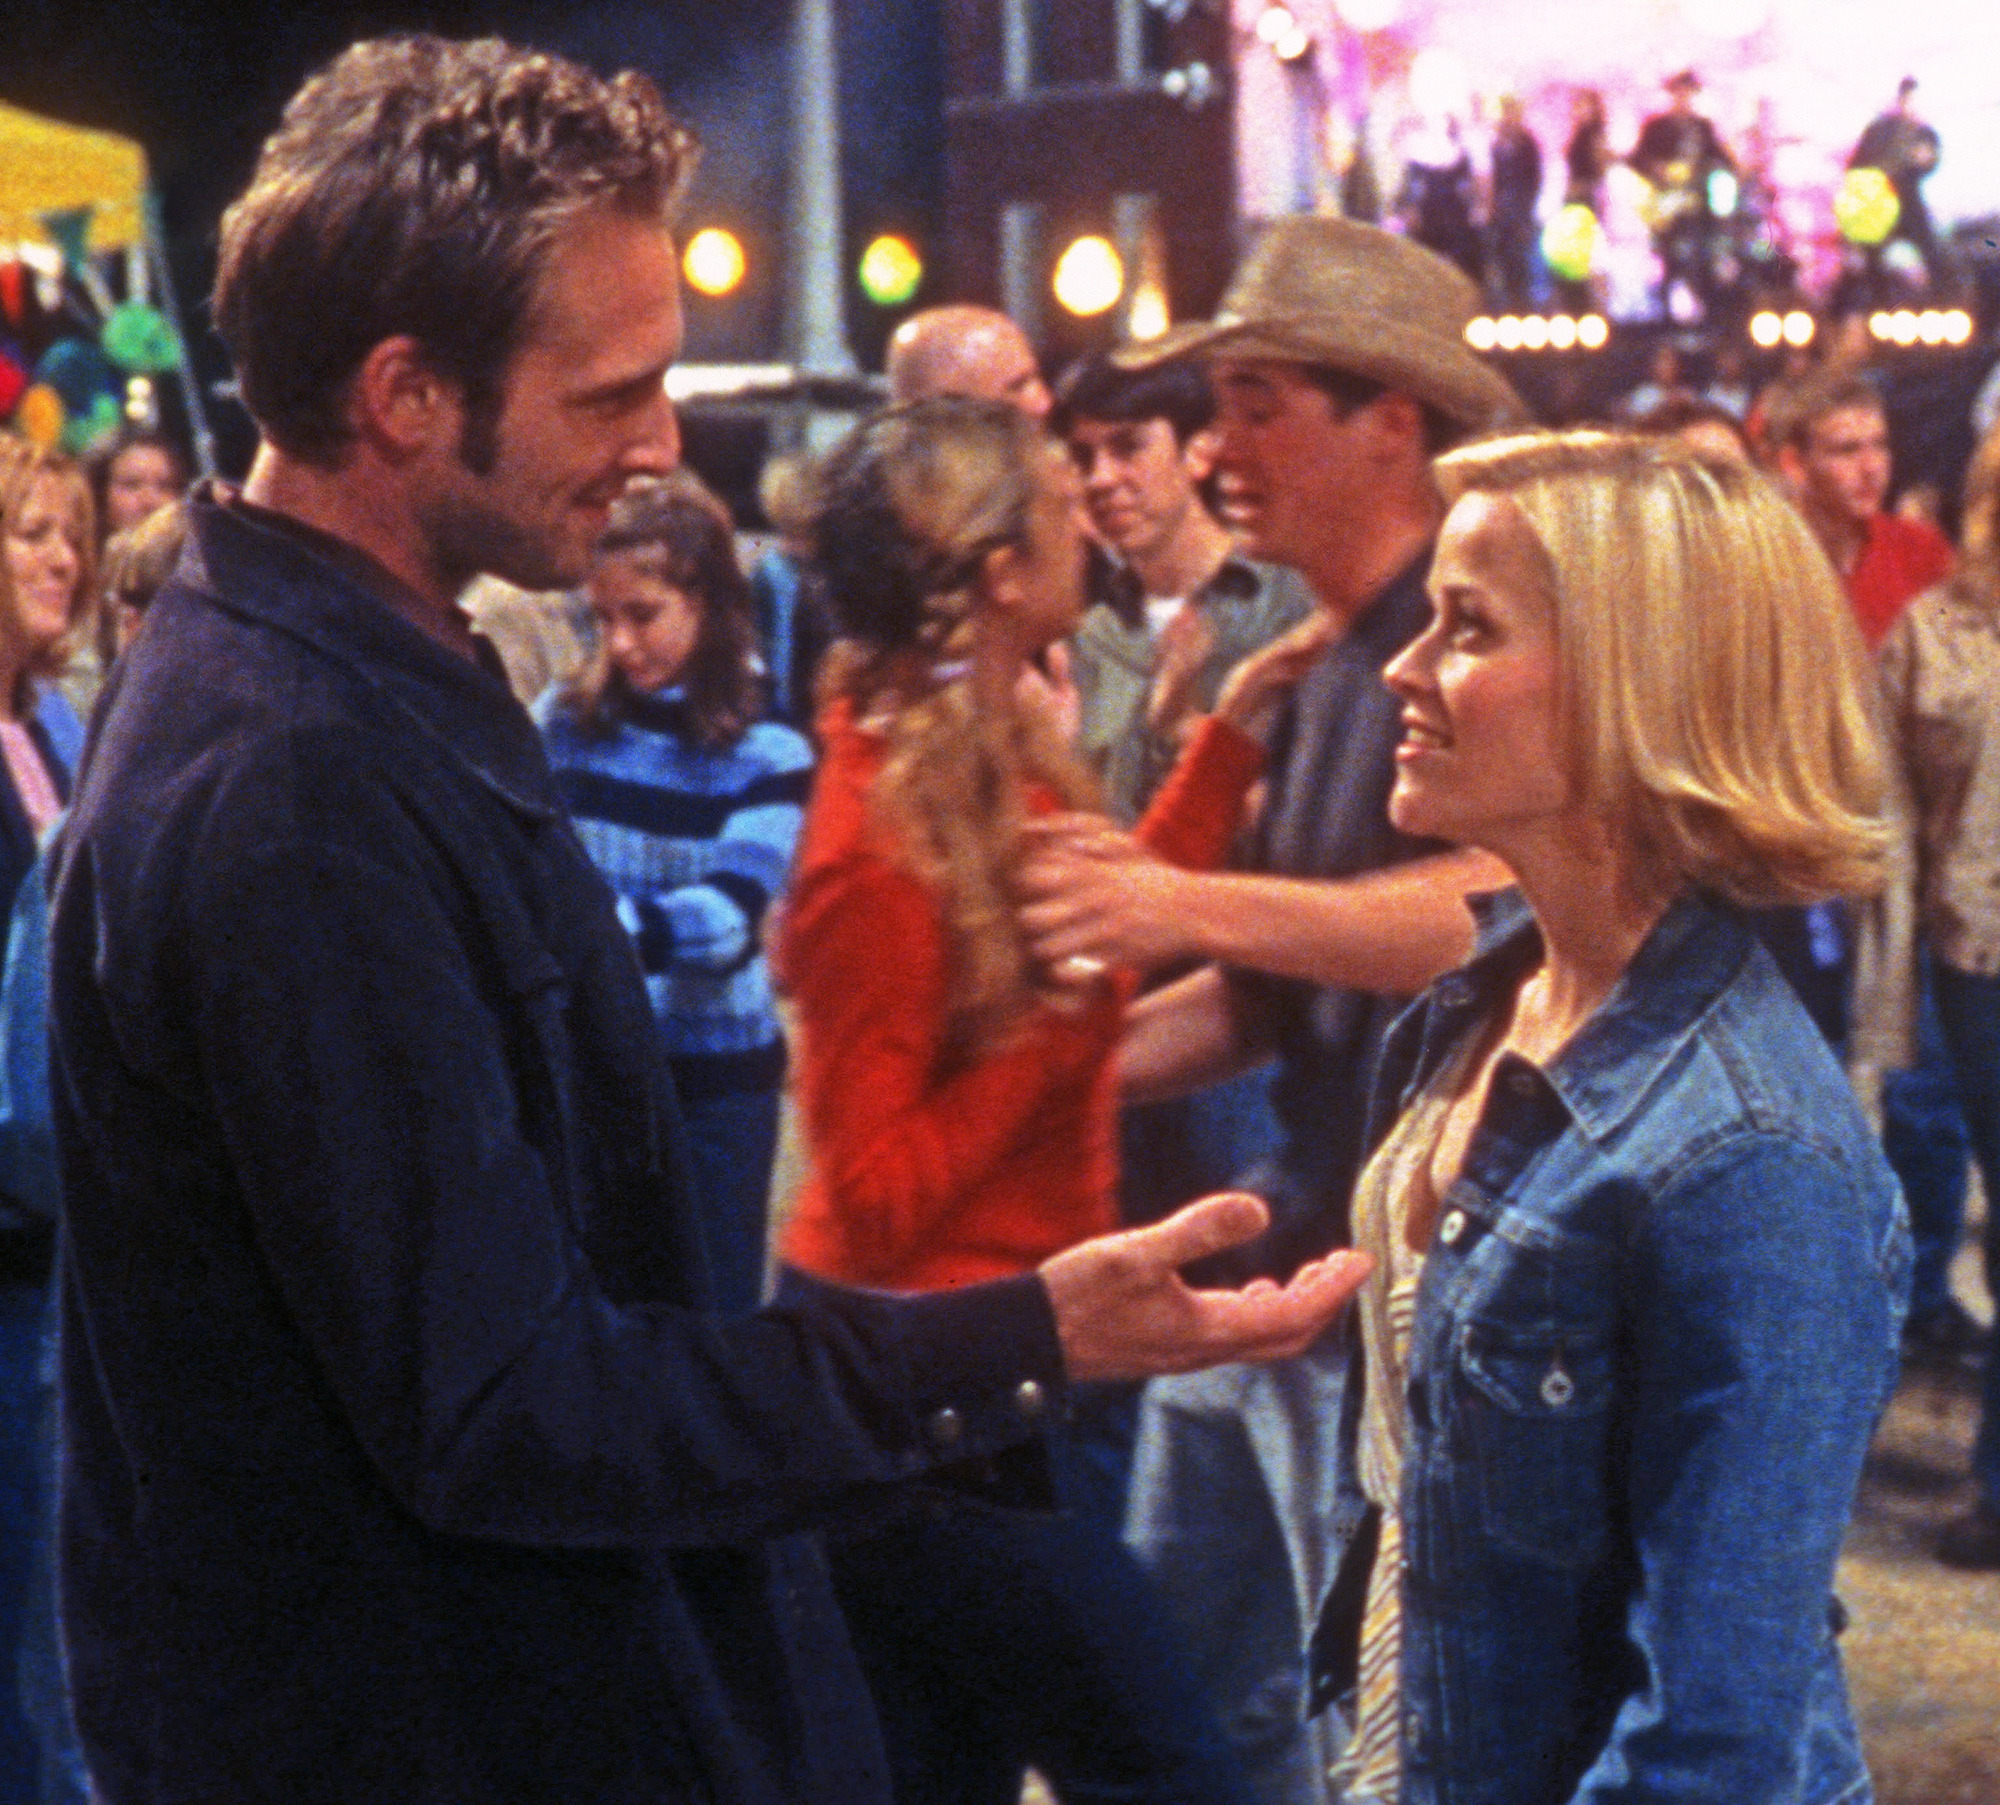 Josh Lucas Reveals He Has 'Extensively' Talked with Sweet Home Alabama Director About a Sequel